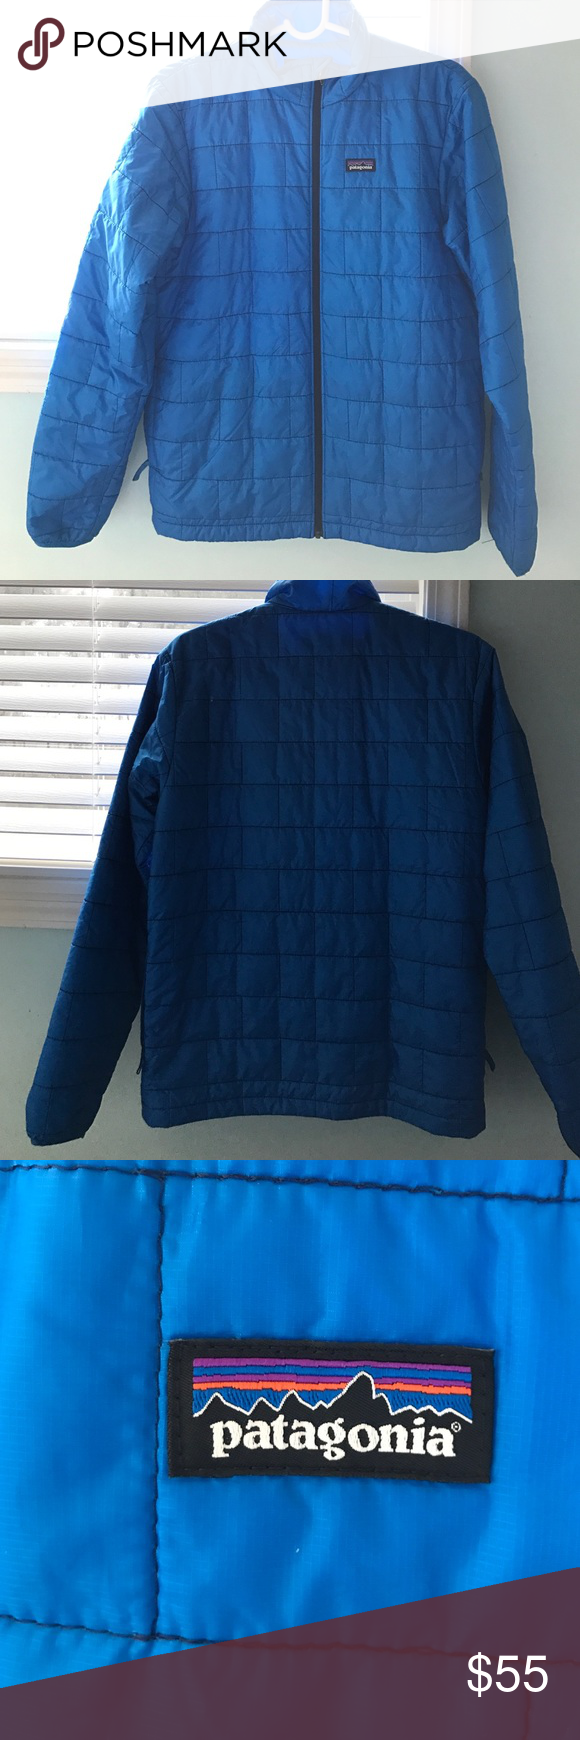 Patagonia Nano Puff Coat Boys nano puff coat, fits like men's small! Great condition only worn once! Patagonia Jackets & Coats Puffers